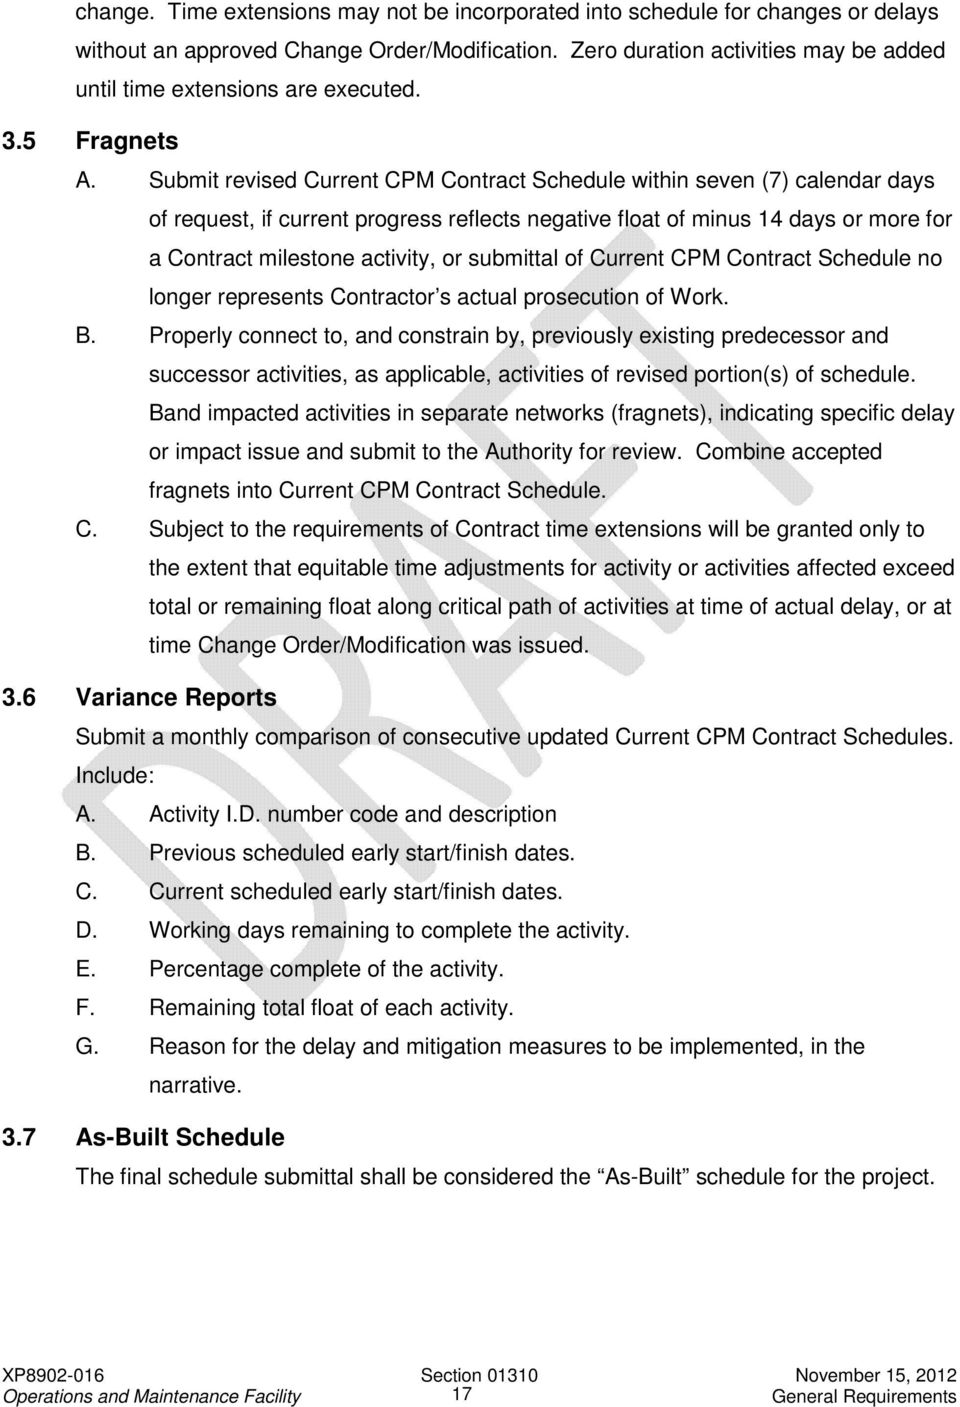 Submit revised Current CPM Contract Schedule within seven (7) calendar days of request, if current progress reflects negative float of minus 14 days or more for a Contract milestone activity, or